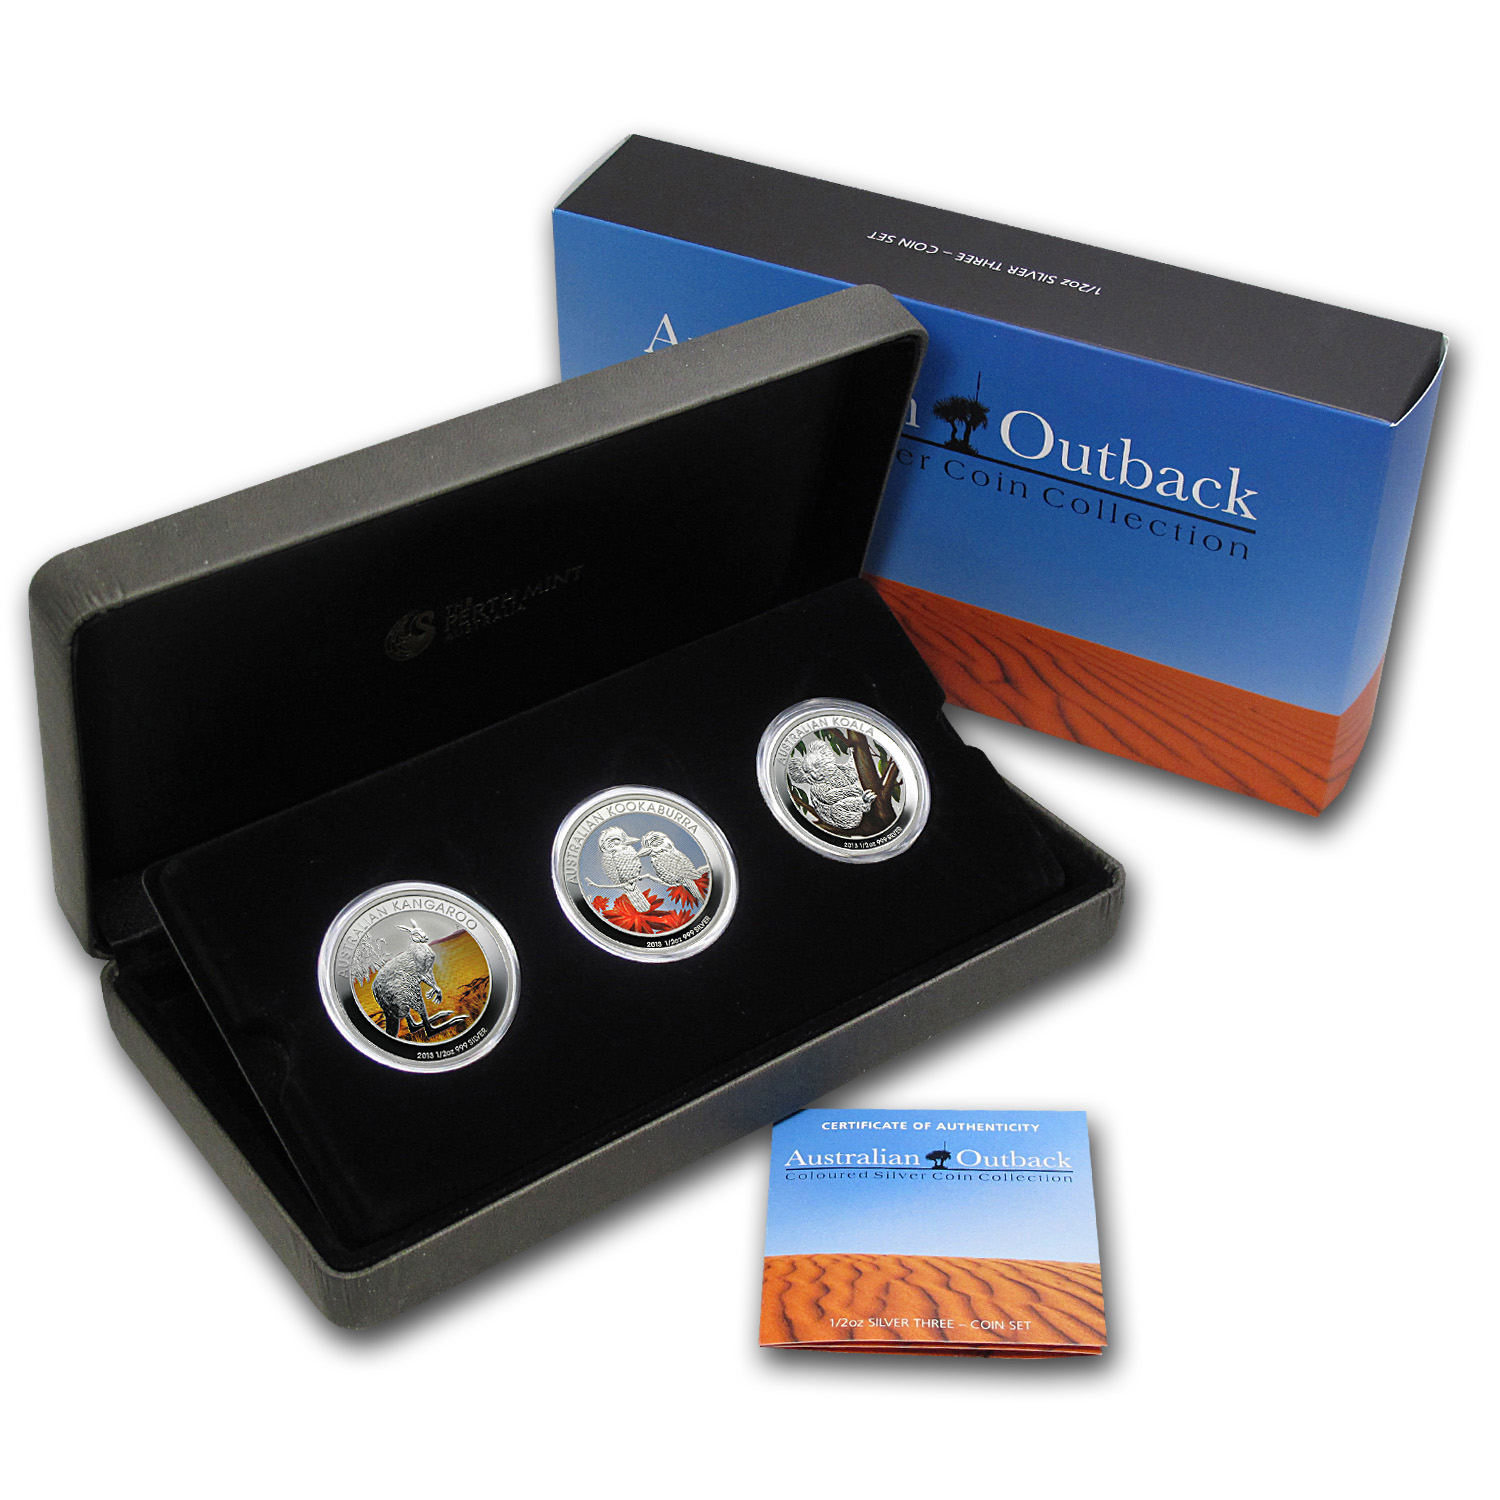 2013 1/2 oz Silver Australian Outback Collection - 3 Coin Set